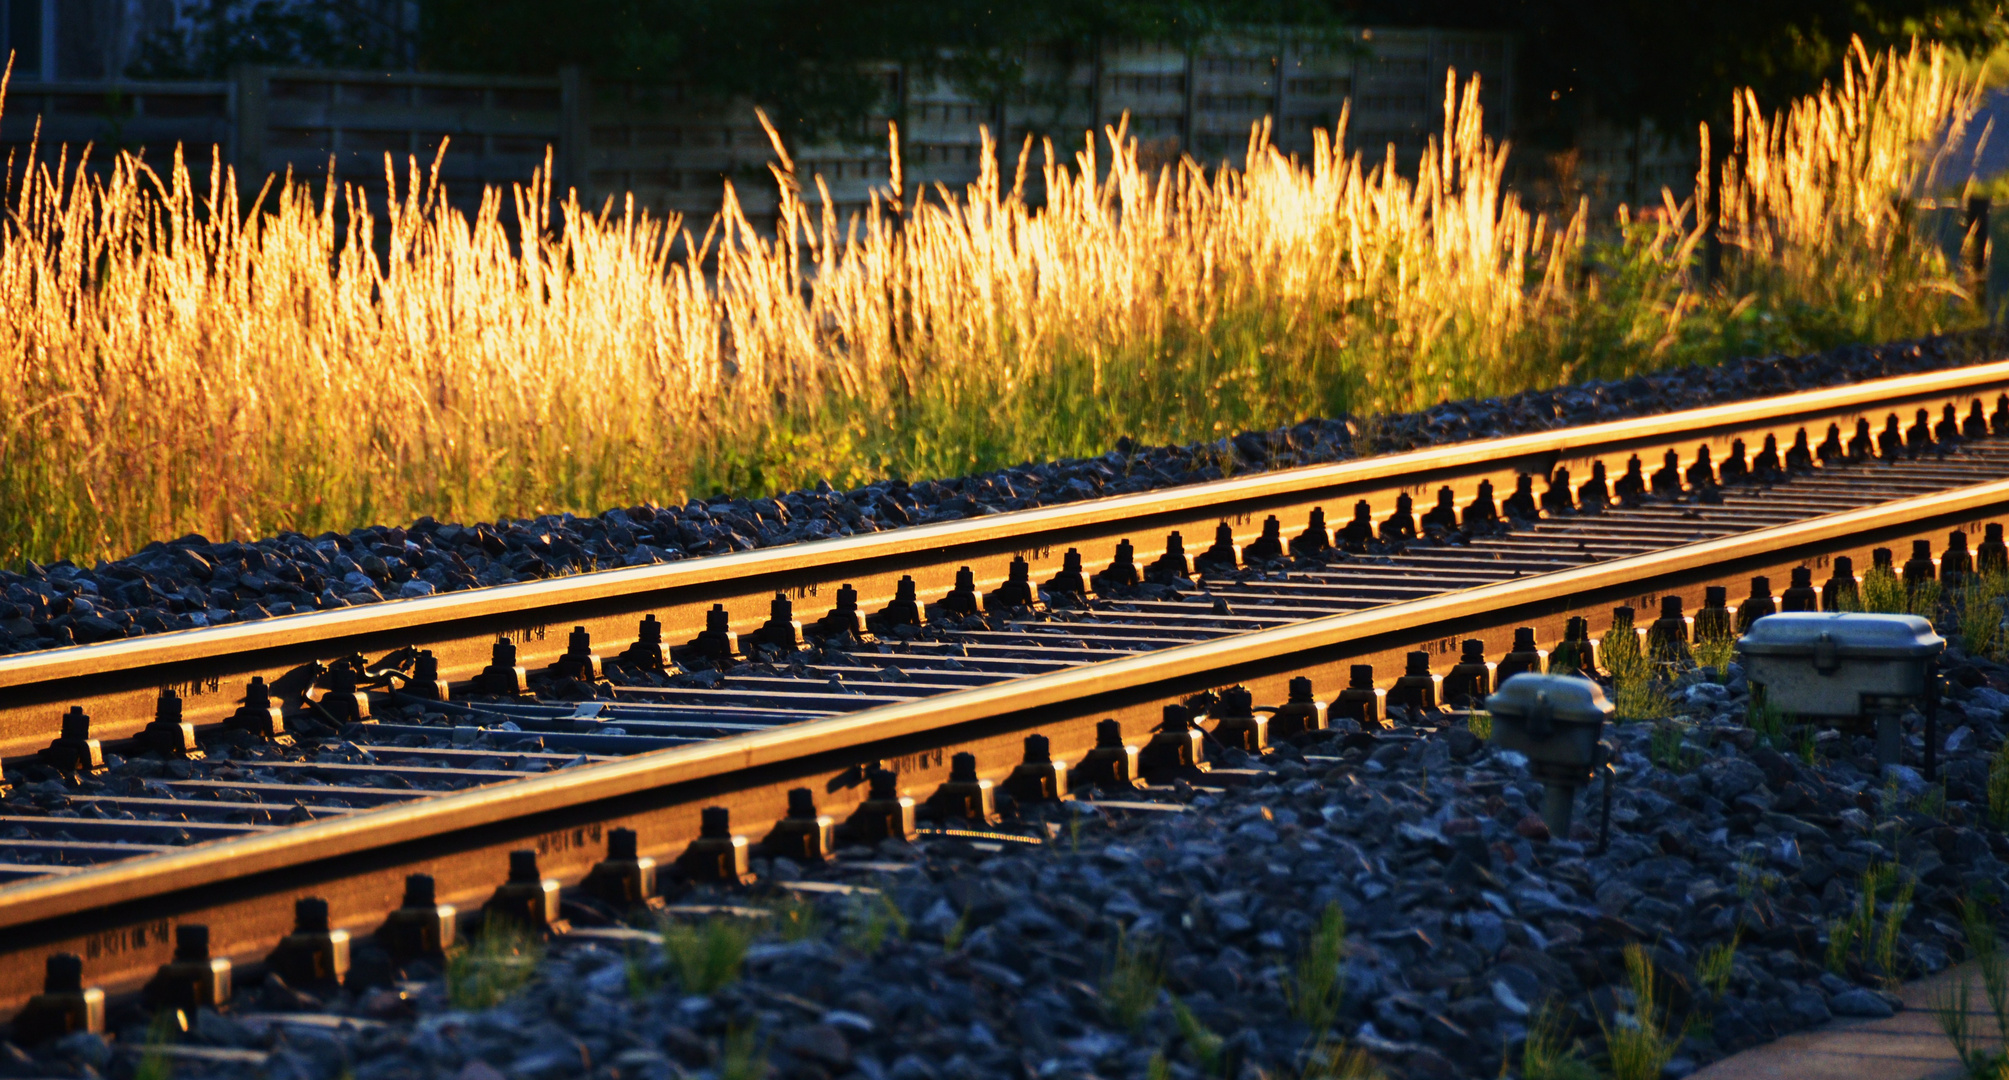 Grass behind the tracks